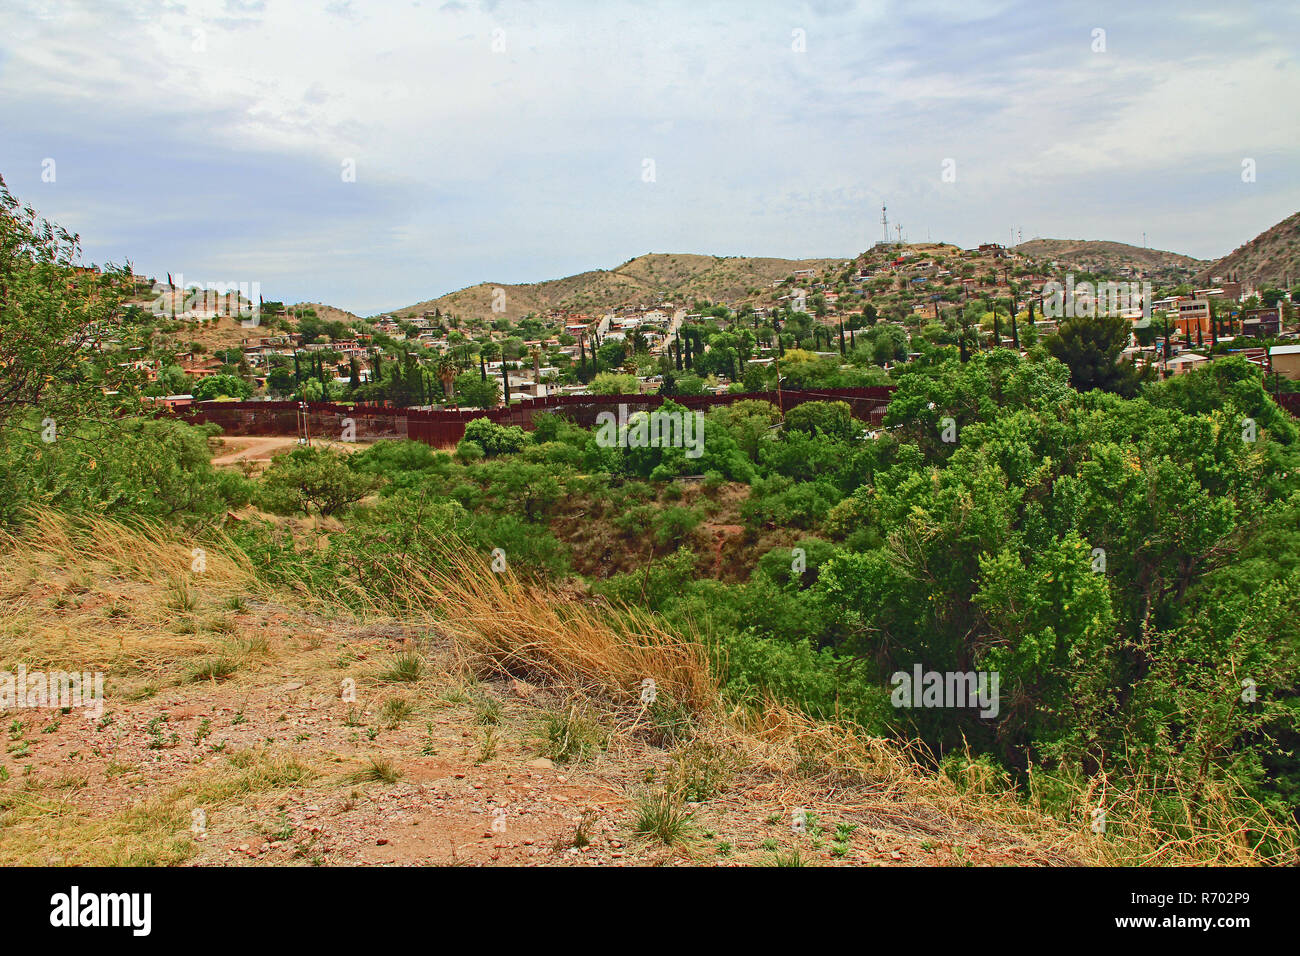 Border Fence Separating the US from Mexico Near Nogales, Arizona Stock Photo